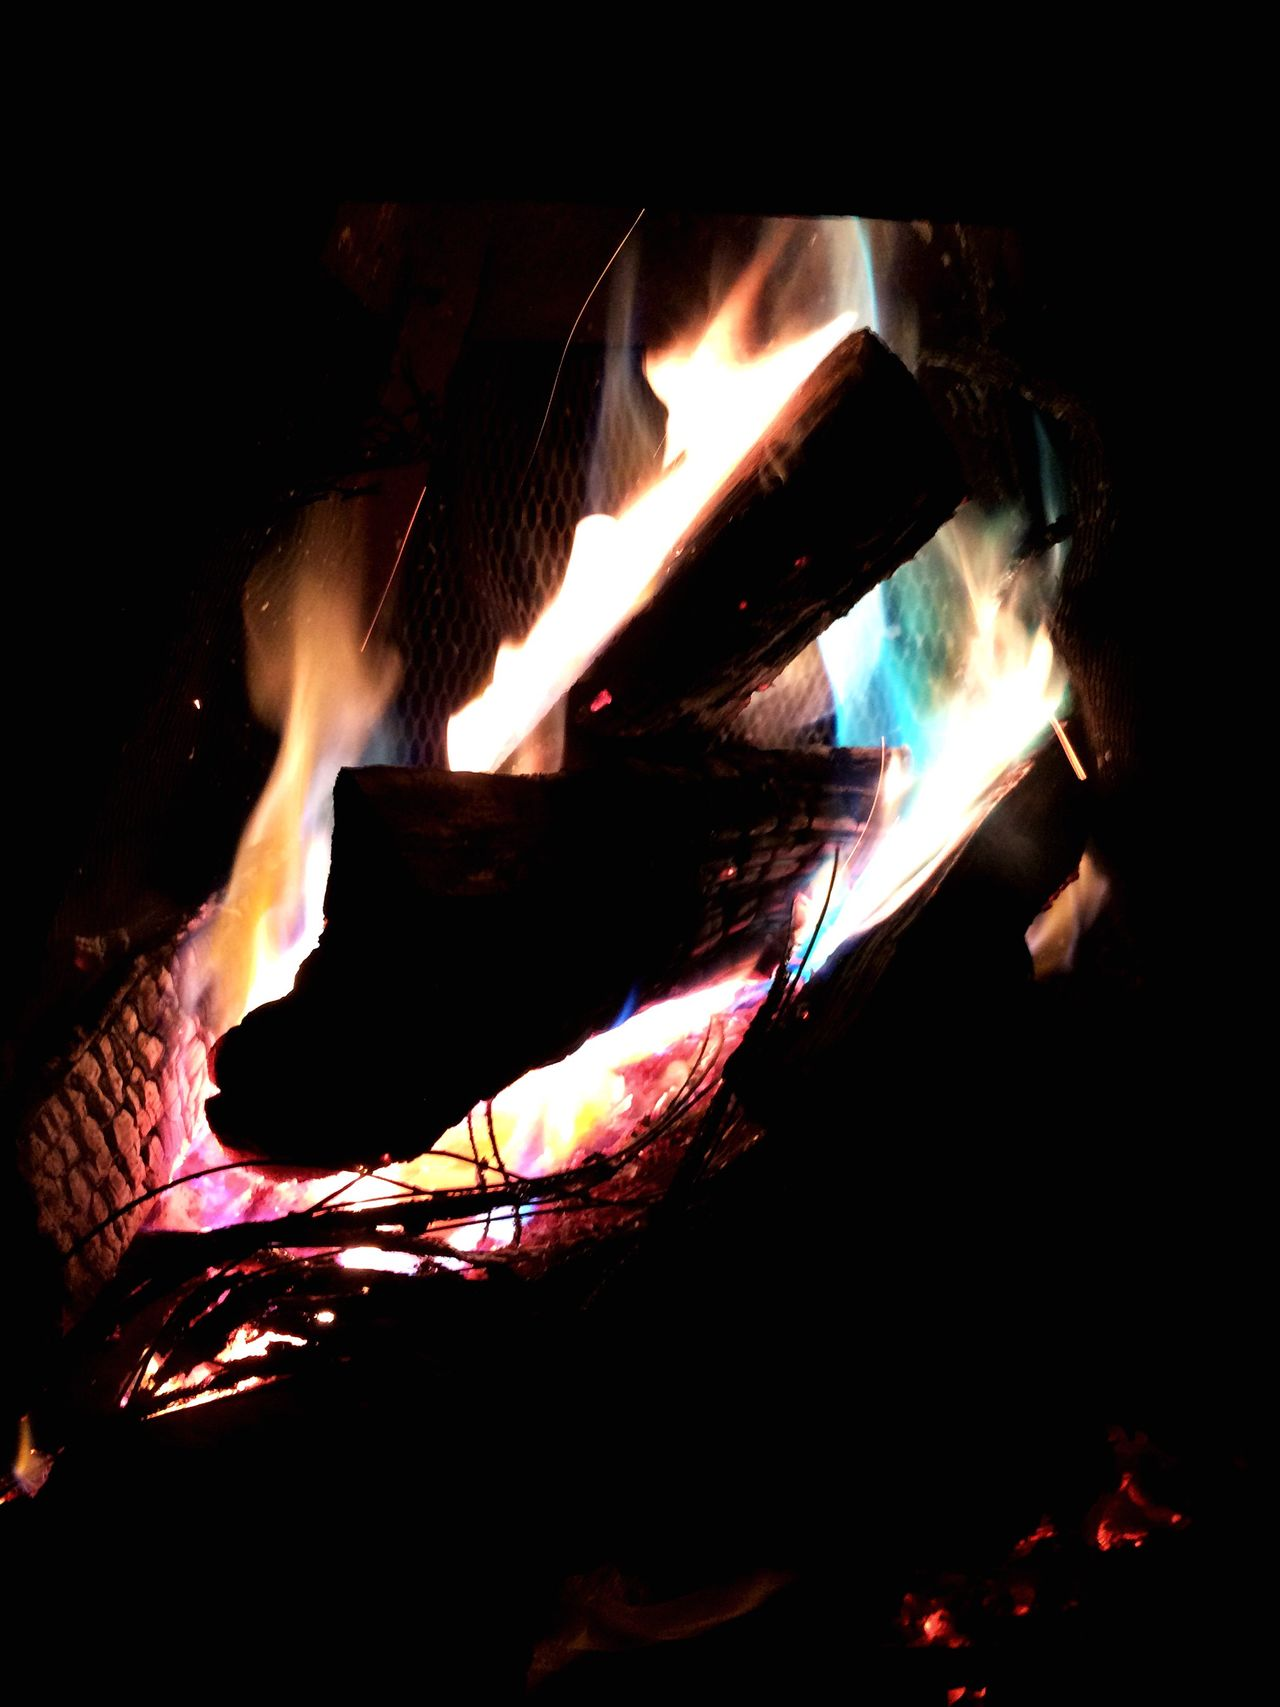 Check This Out Relaxing Taking Photos Enjoying Life Fire Fireplace Night Camp Fire Cable Fire Cable Electric Fire I put electric cable in my fire and the colors is amazing Amazing Nature Pink Violet Green Blue Red Yellow Beauty In Nature